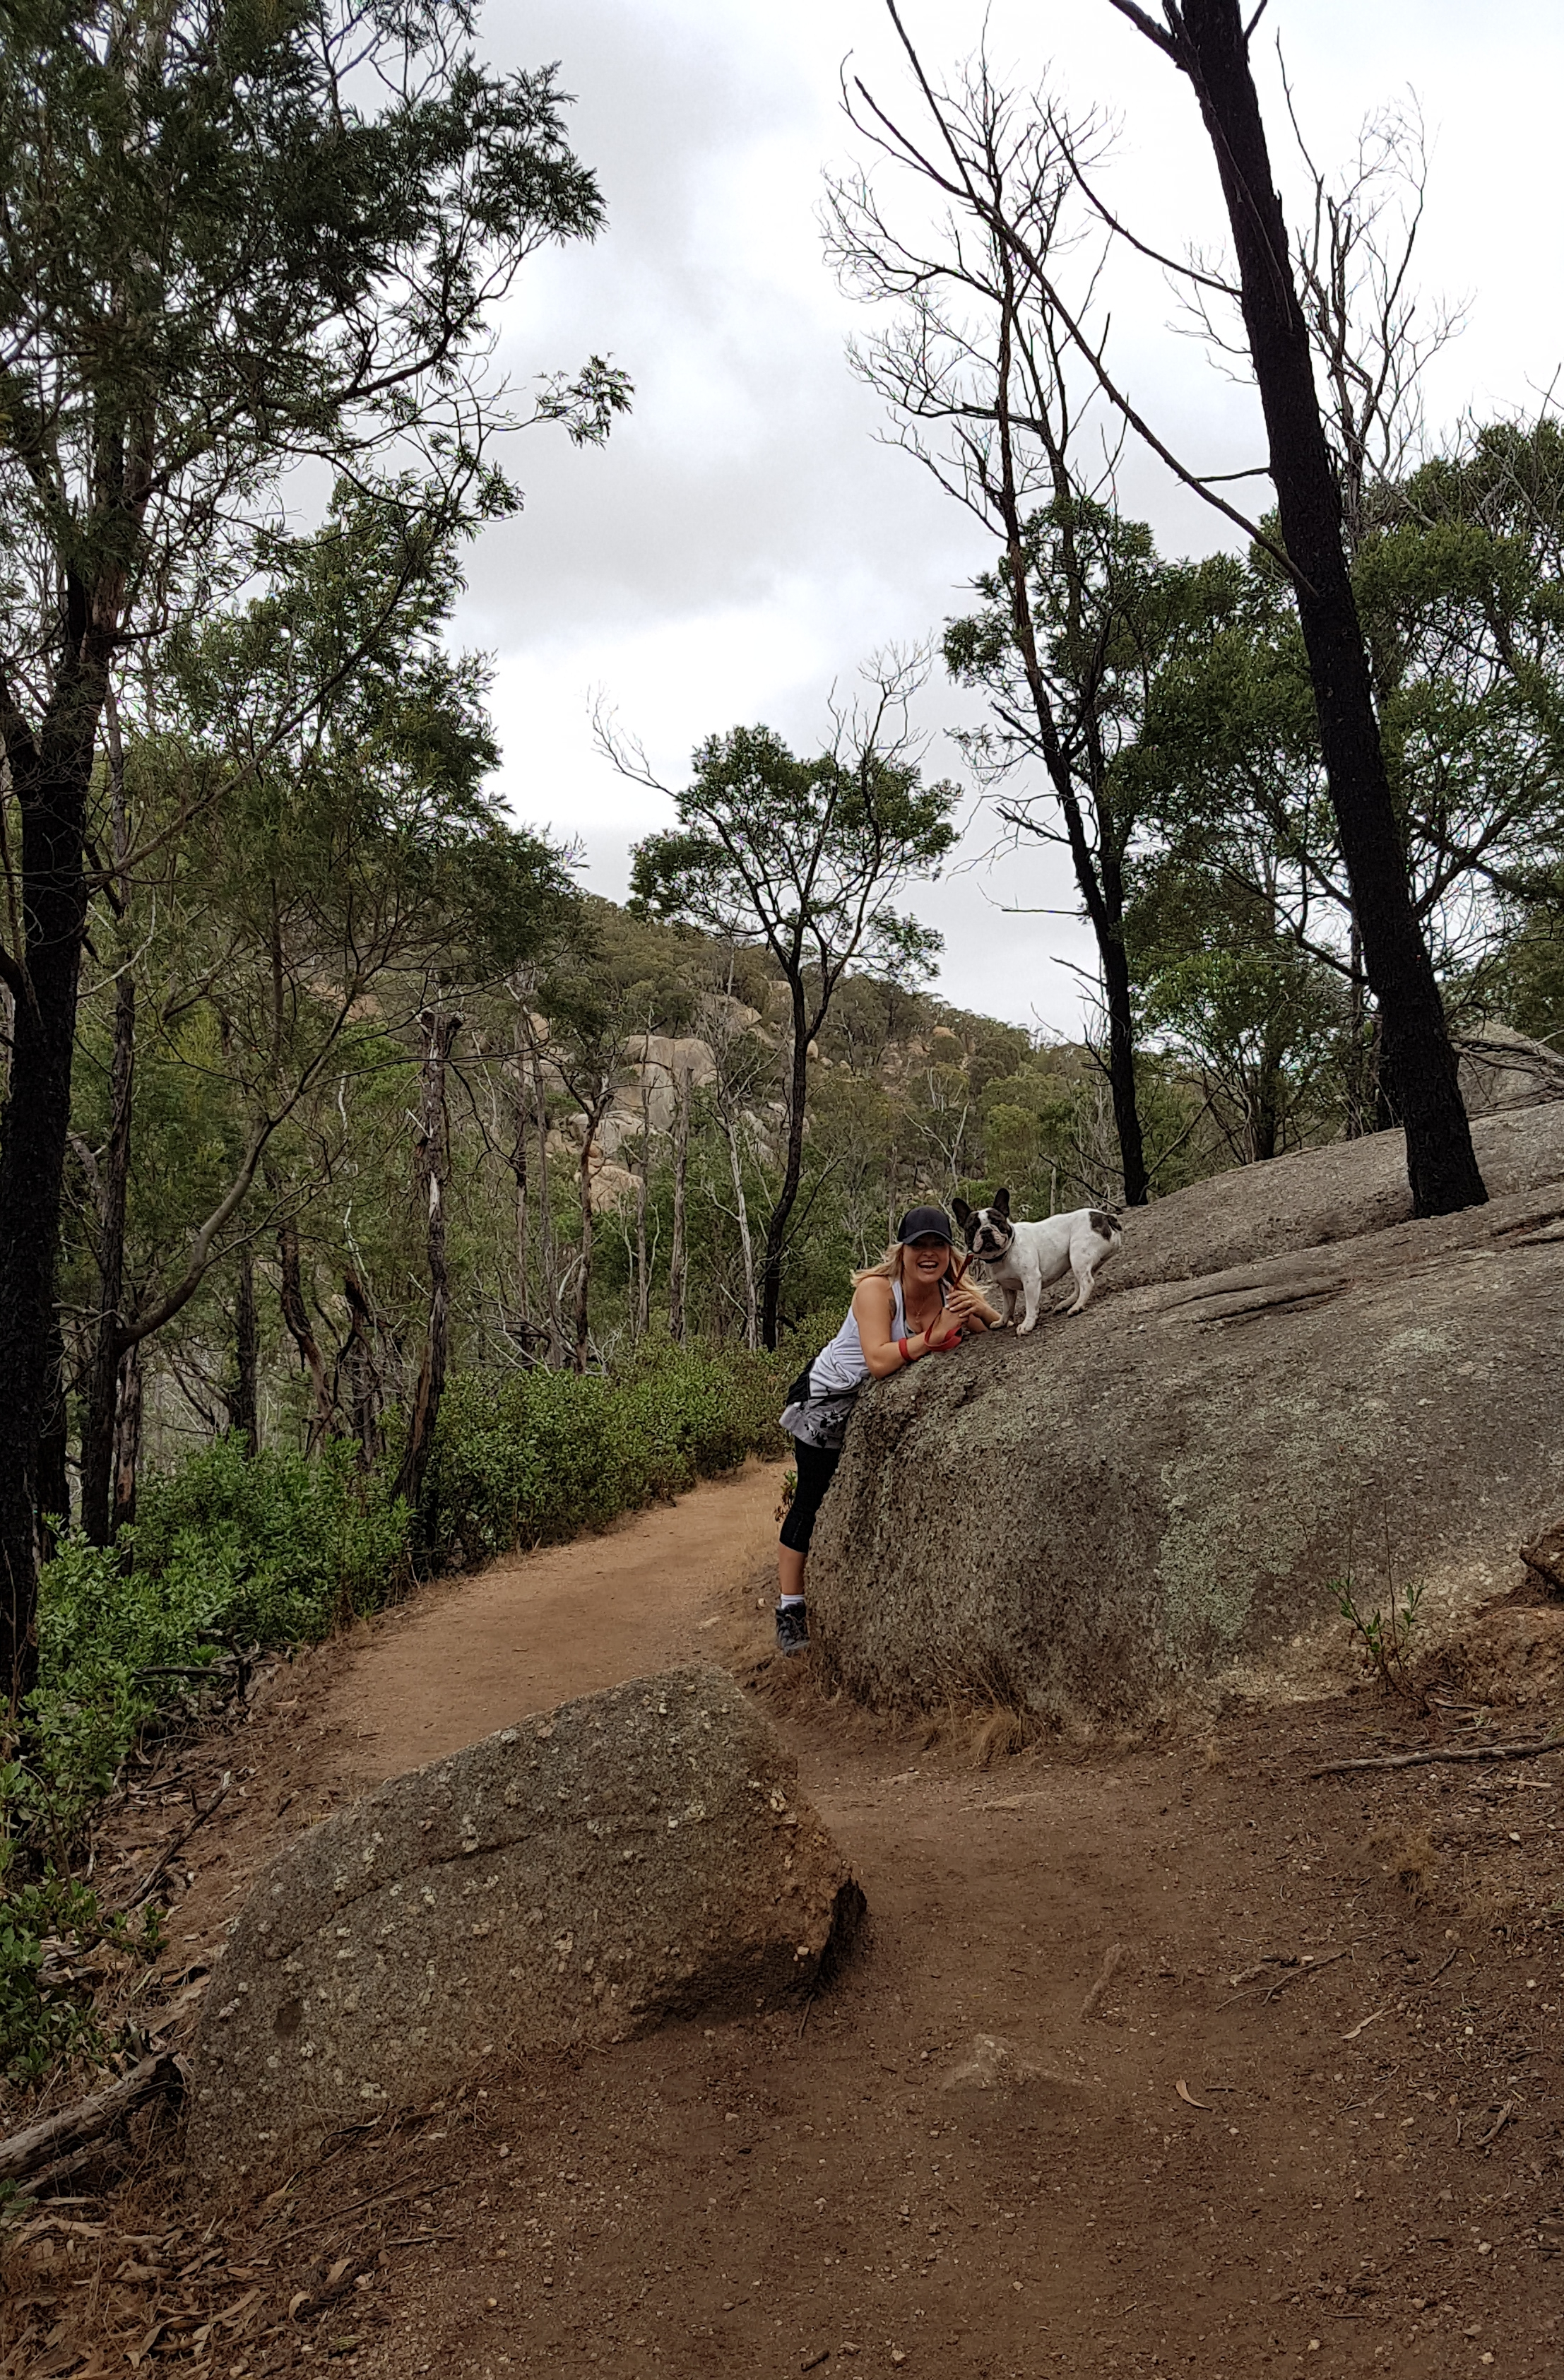 hiking-melbourne-outdoors.jpg